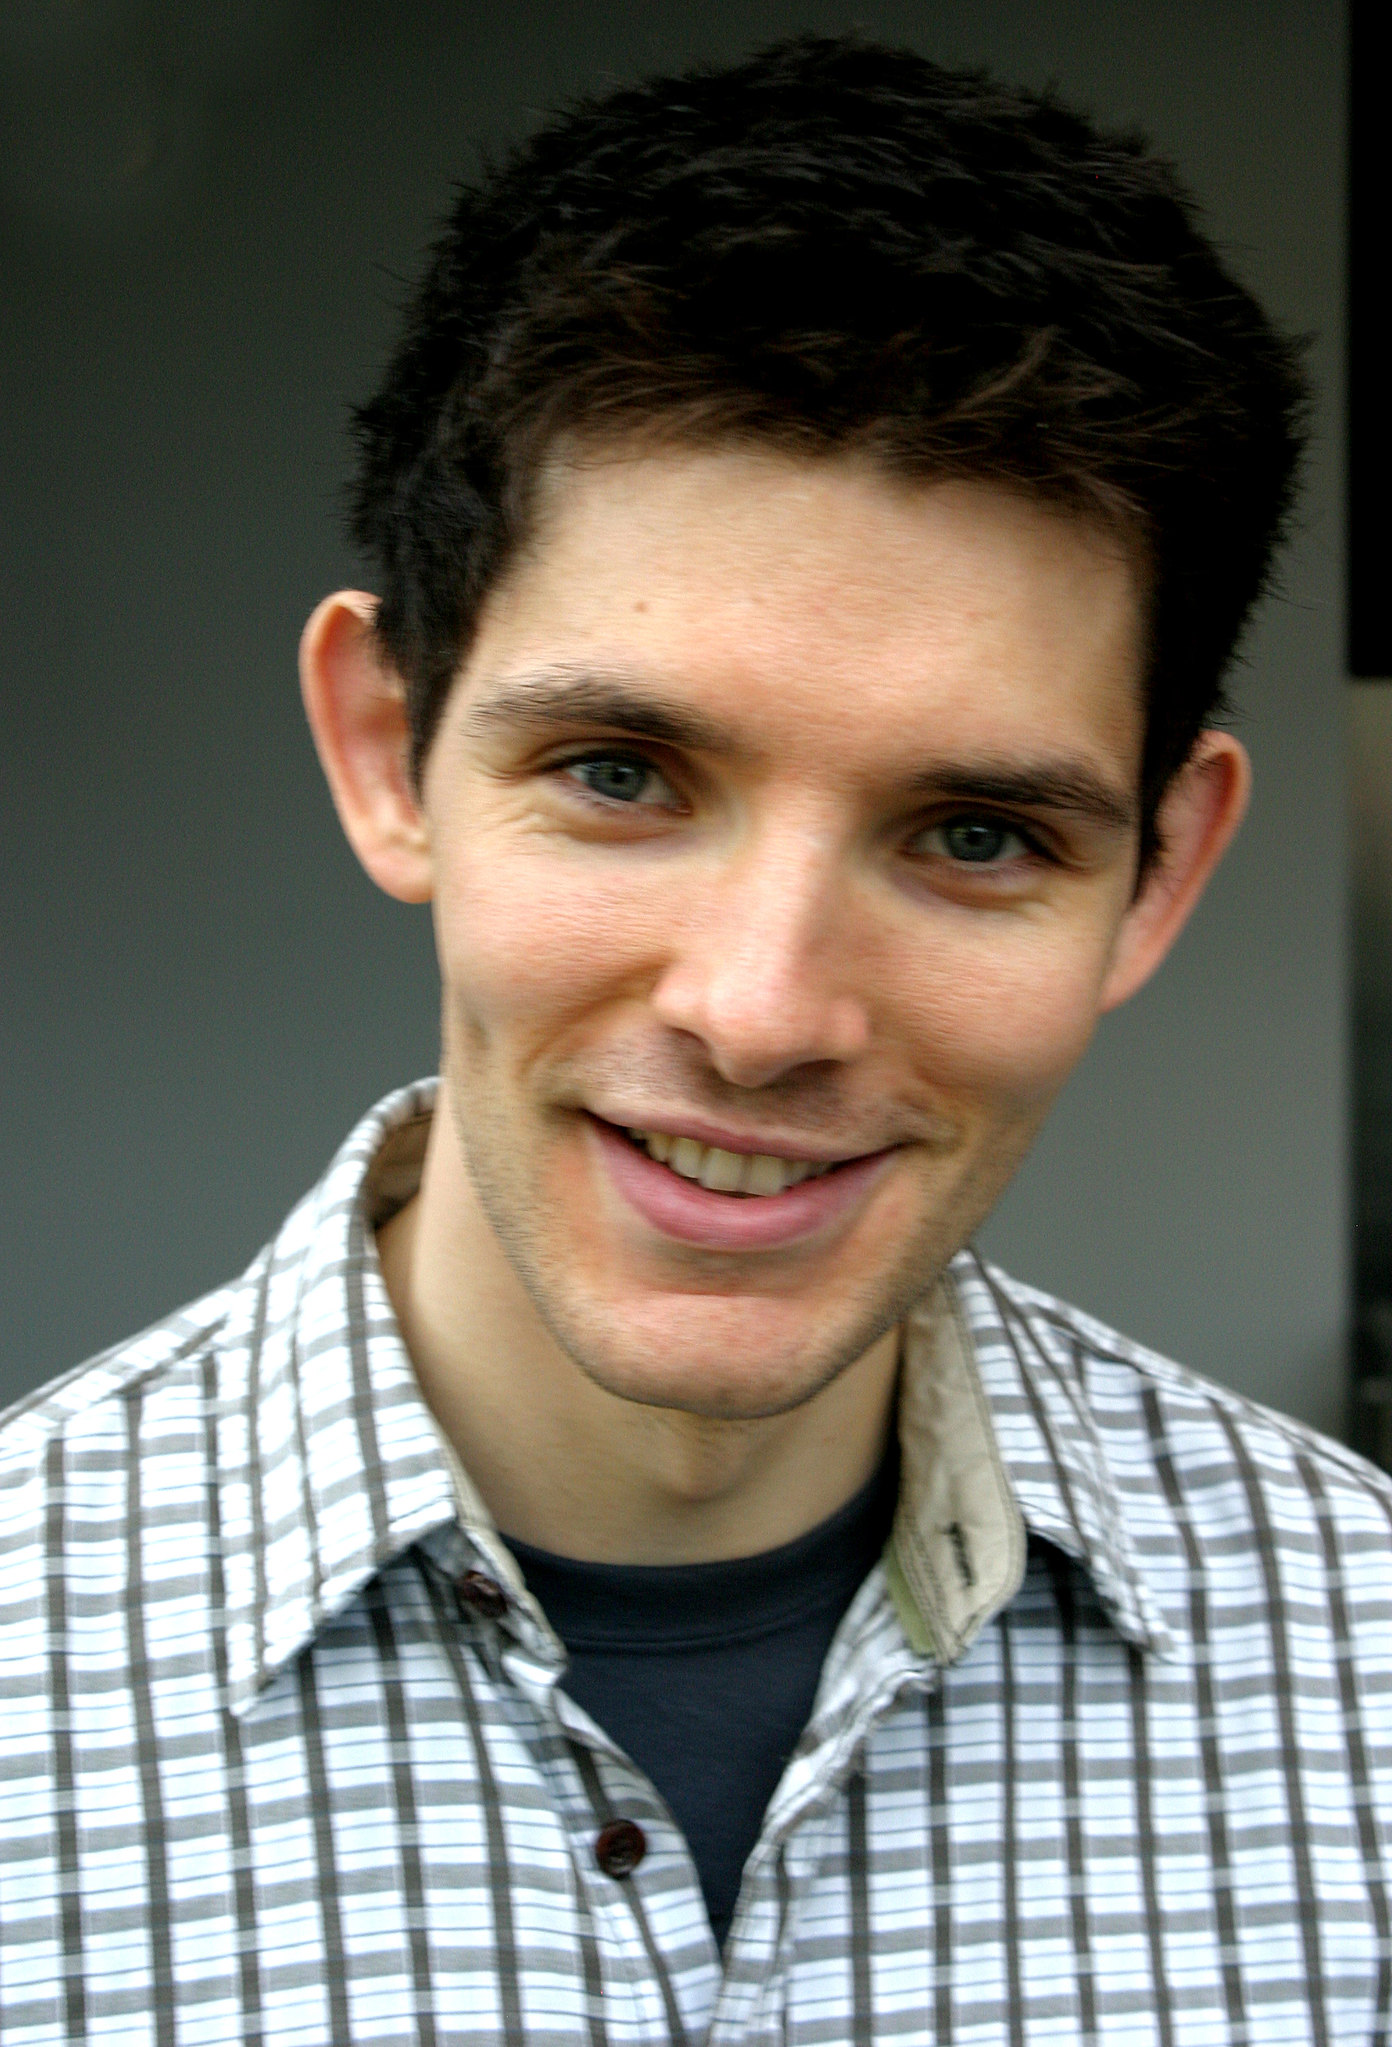 Colin Morgan (born 1986) nudes (34 photo), Tits, Cleavage, Twitter, swimsuit 2006